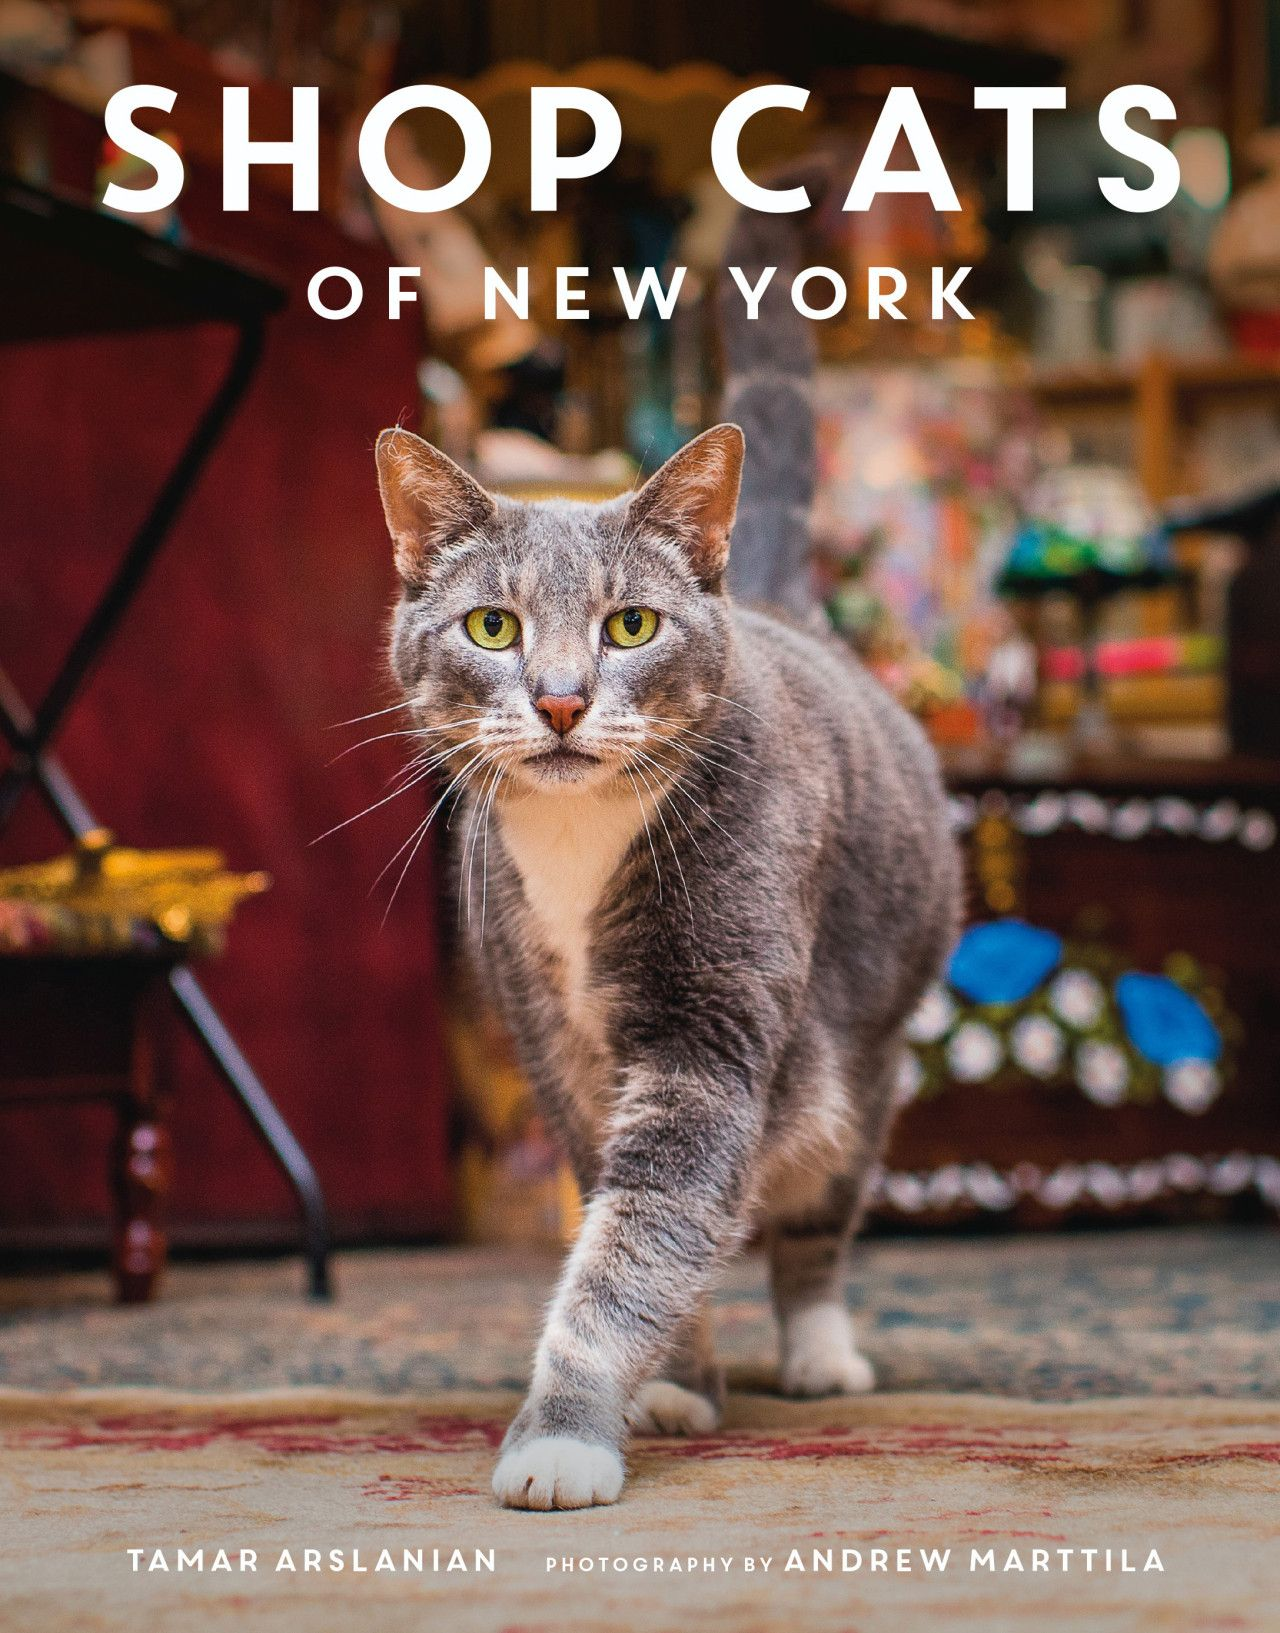 Cats Are The New Greeters In Nyc Stores Cats New York Cats Bodega Cat